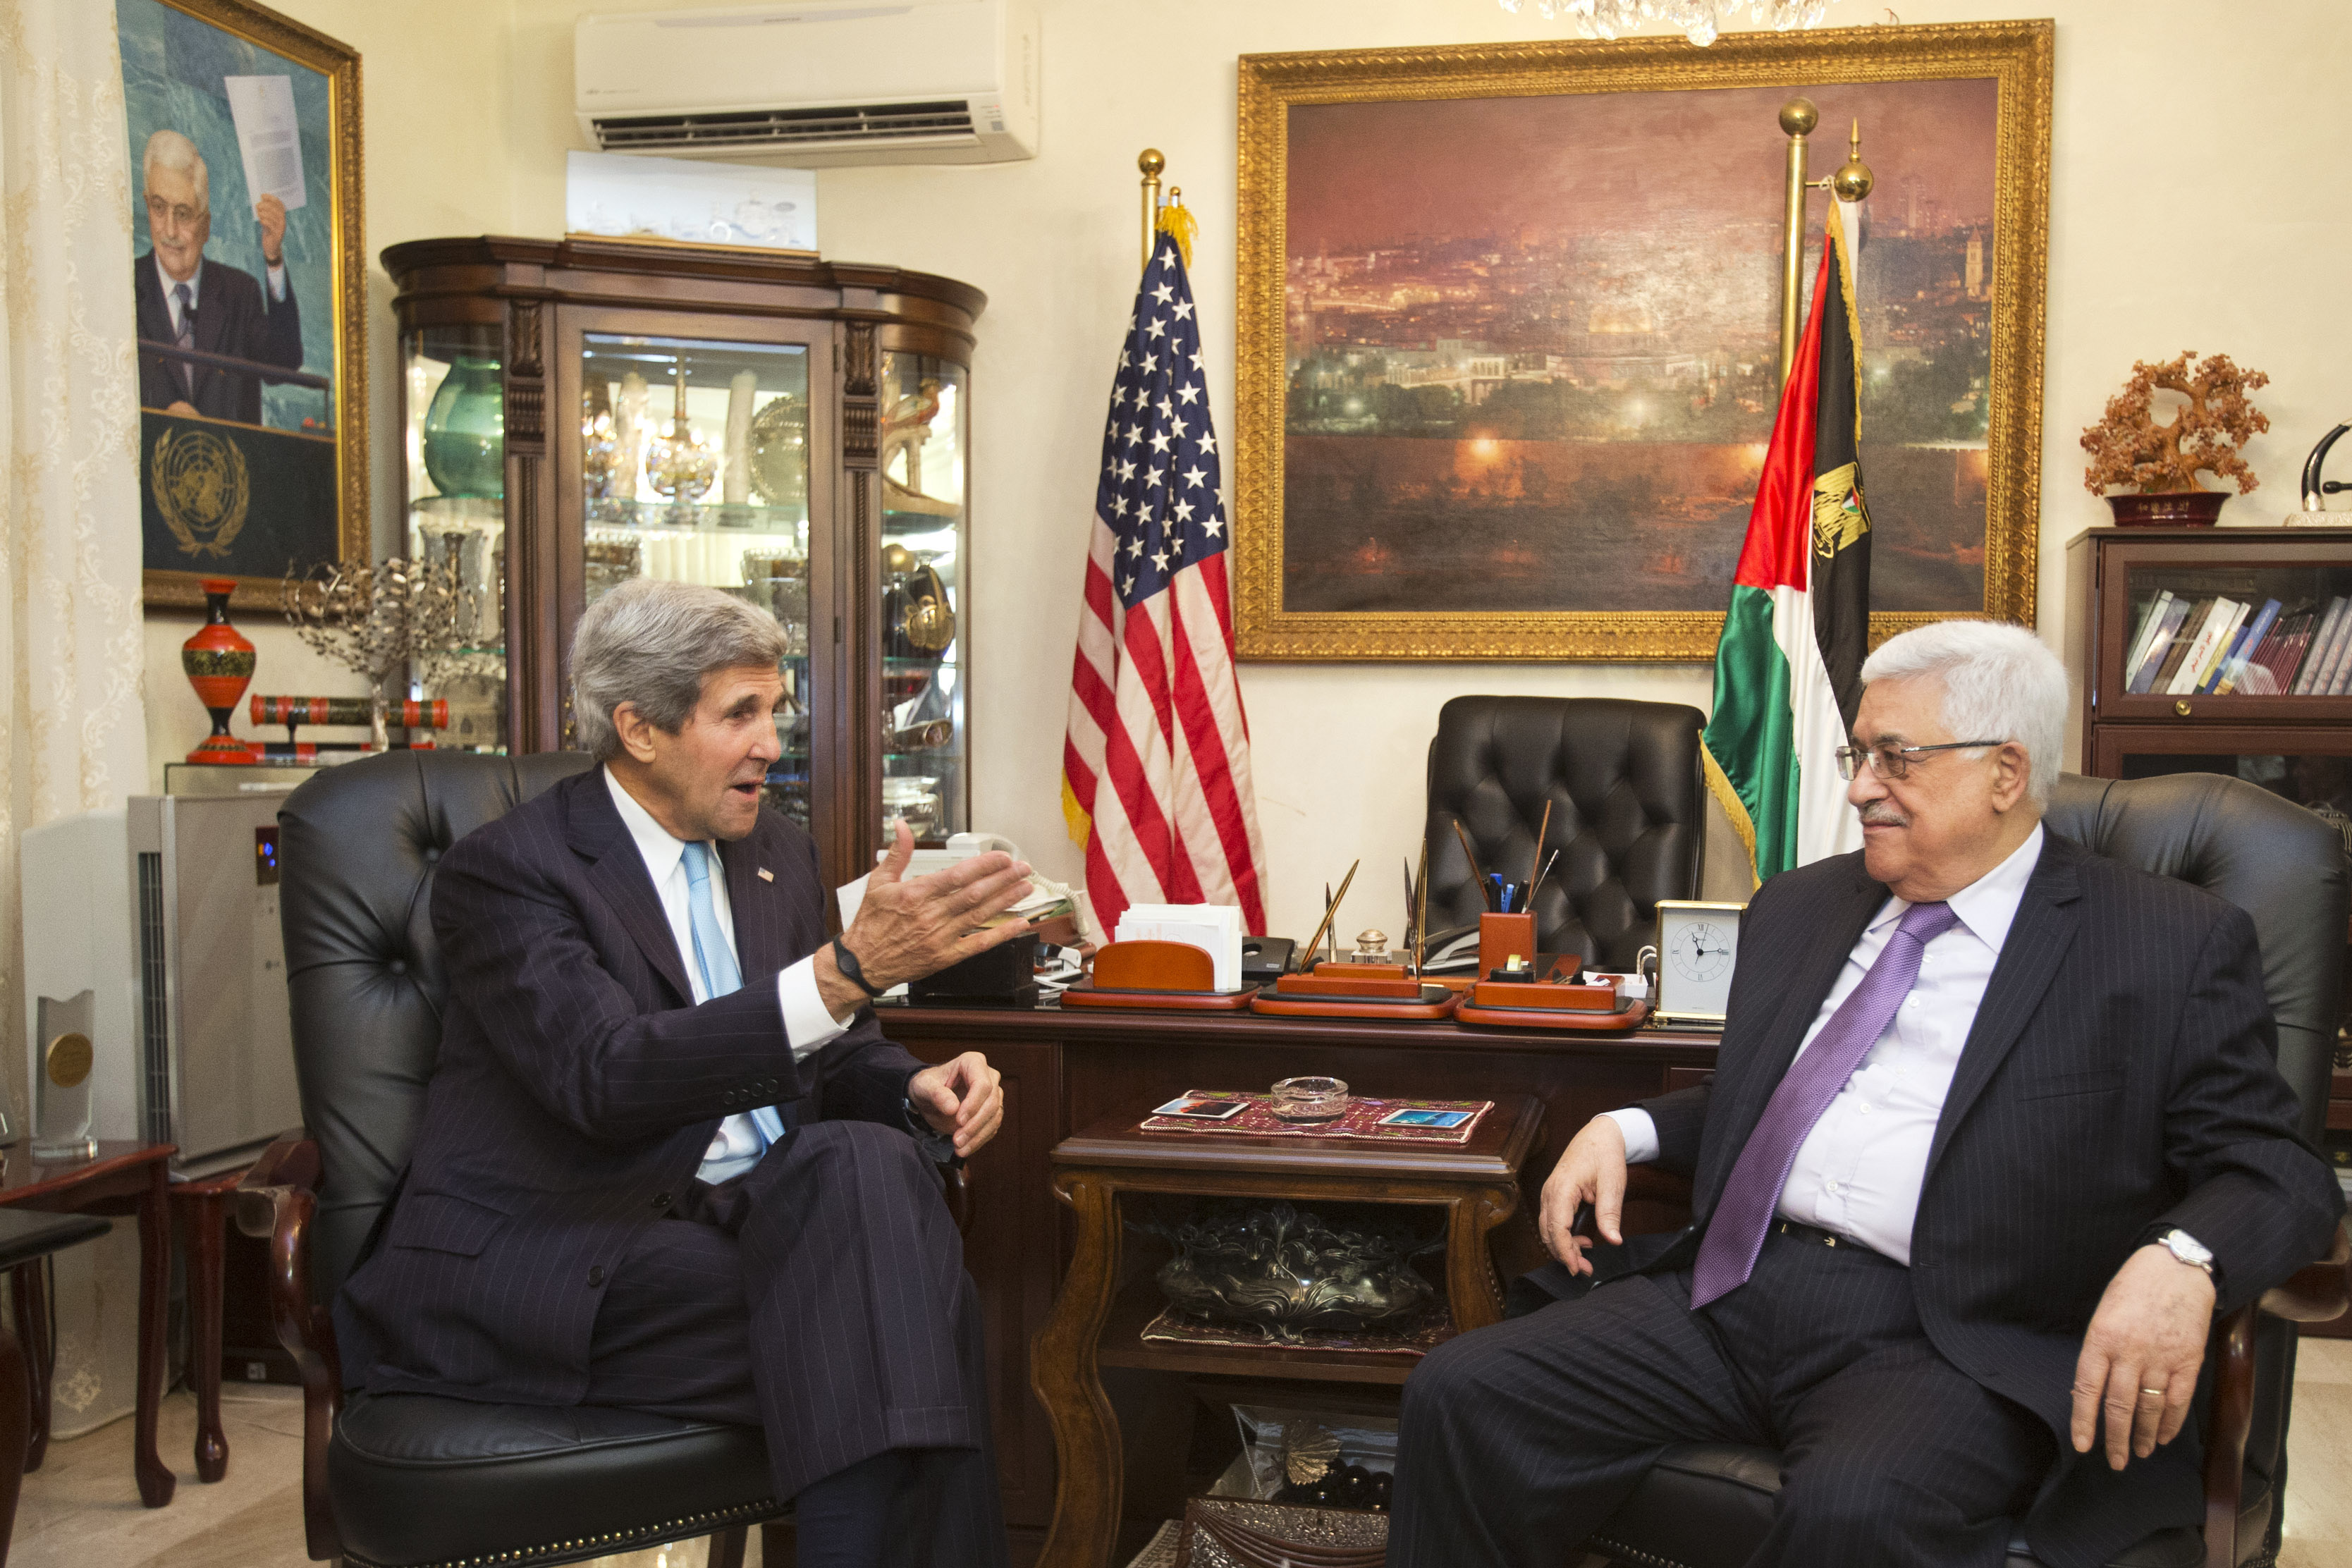 U.S. Secretary of State John Kerry, left, meets with Palestinian President Mahmoud Abbas in Amman, Jordan on Saturday, June 29, 2013, after shuttling to Jordan from Jerusalem in the morning.